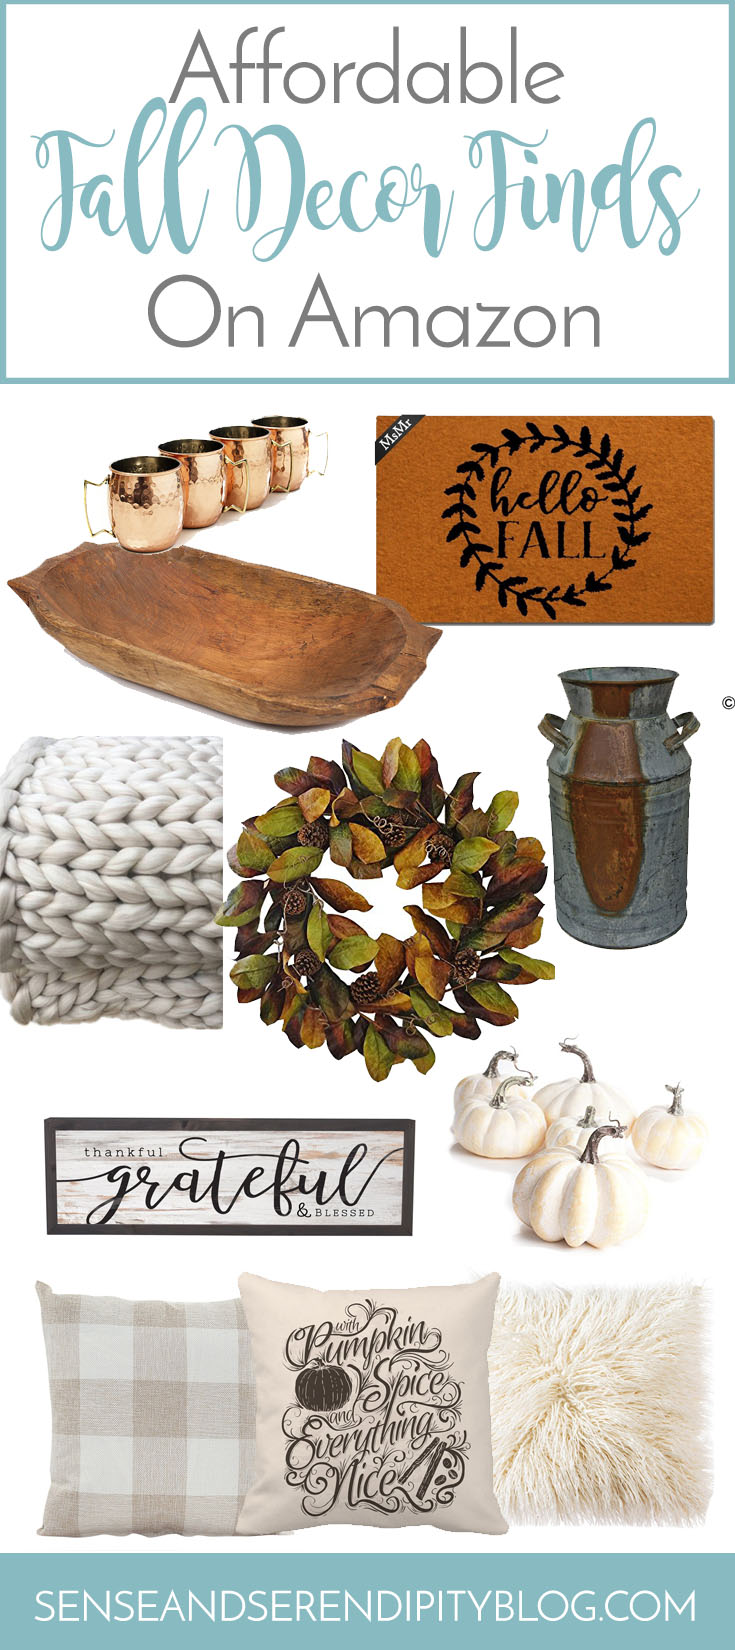 Affordable Fall Decor Finds on Amazon | Sense & Serendipity